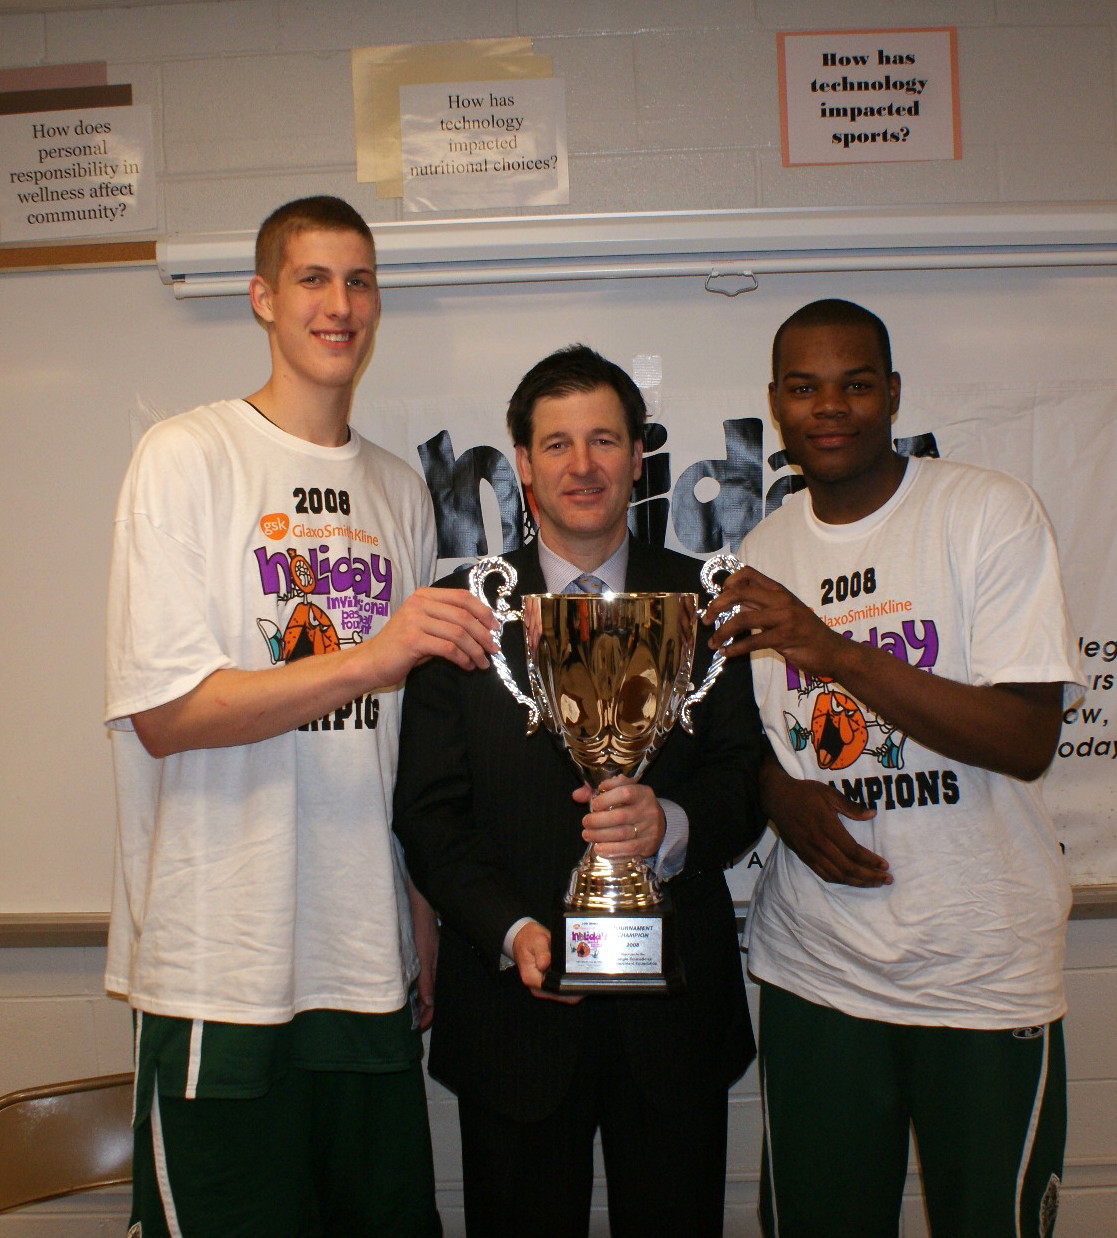 Mason Plumlee, Coach David Gaines and Lakeem Jackson hold up the Glaxo Championship trophy